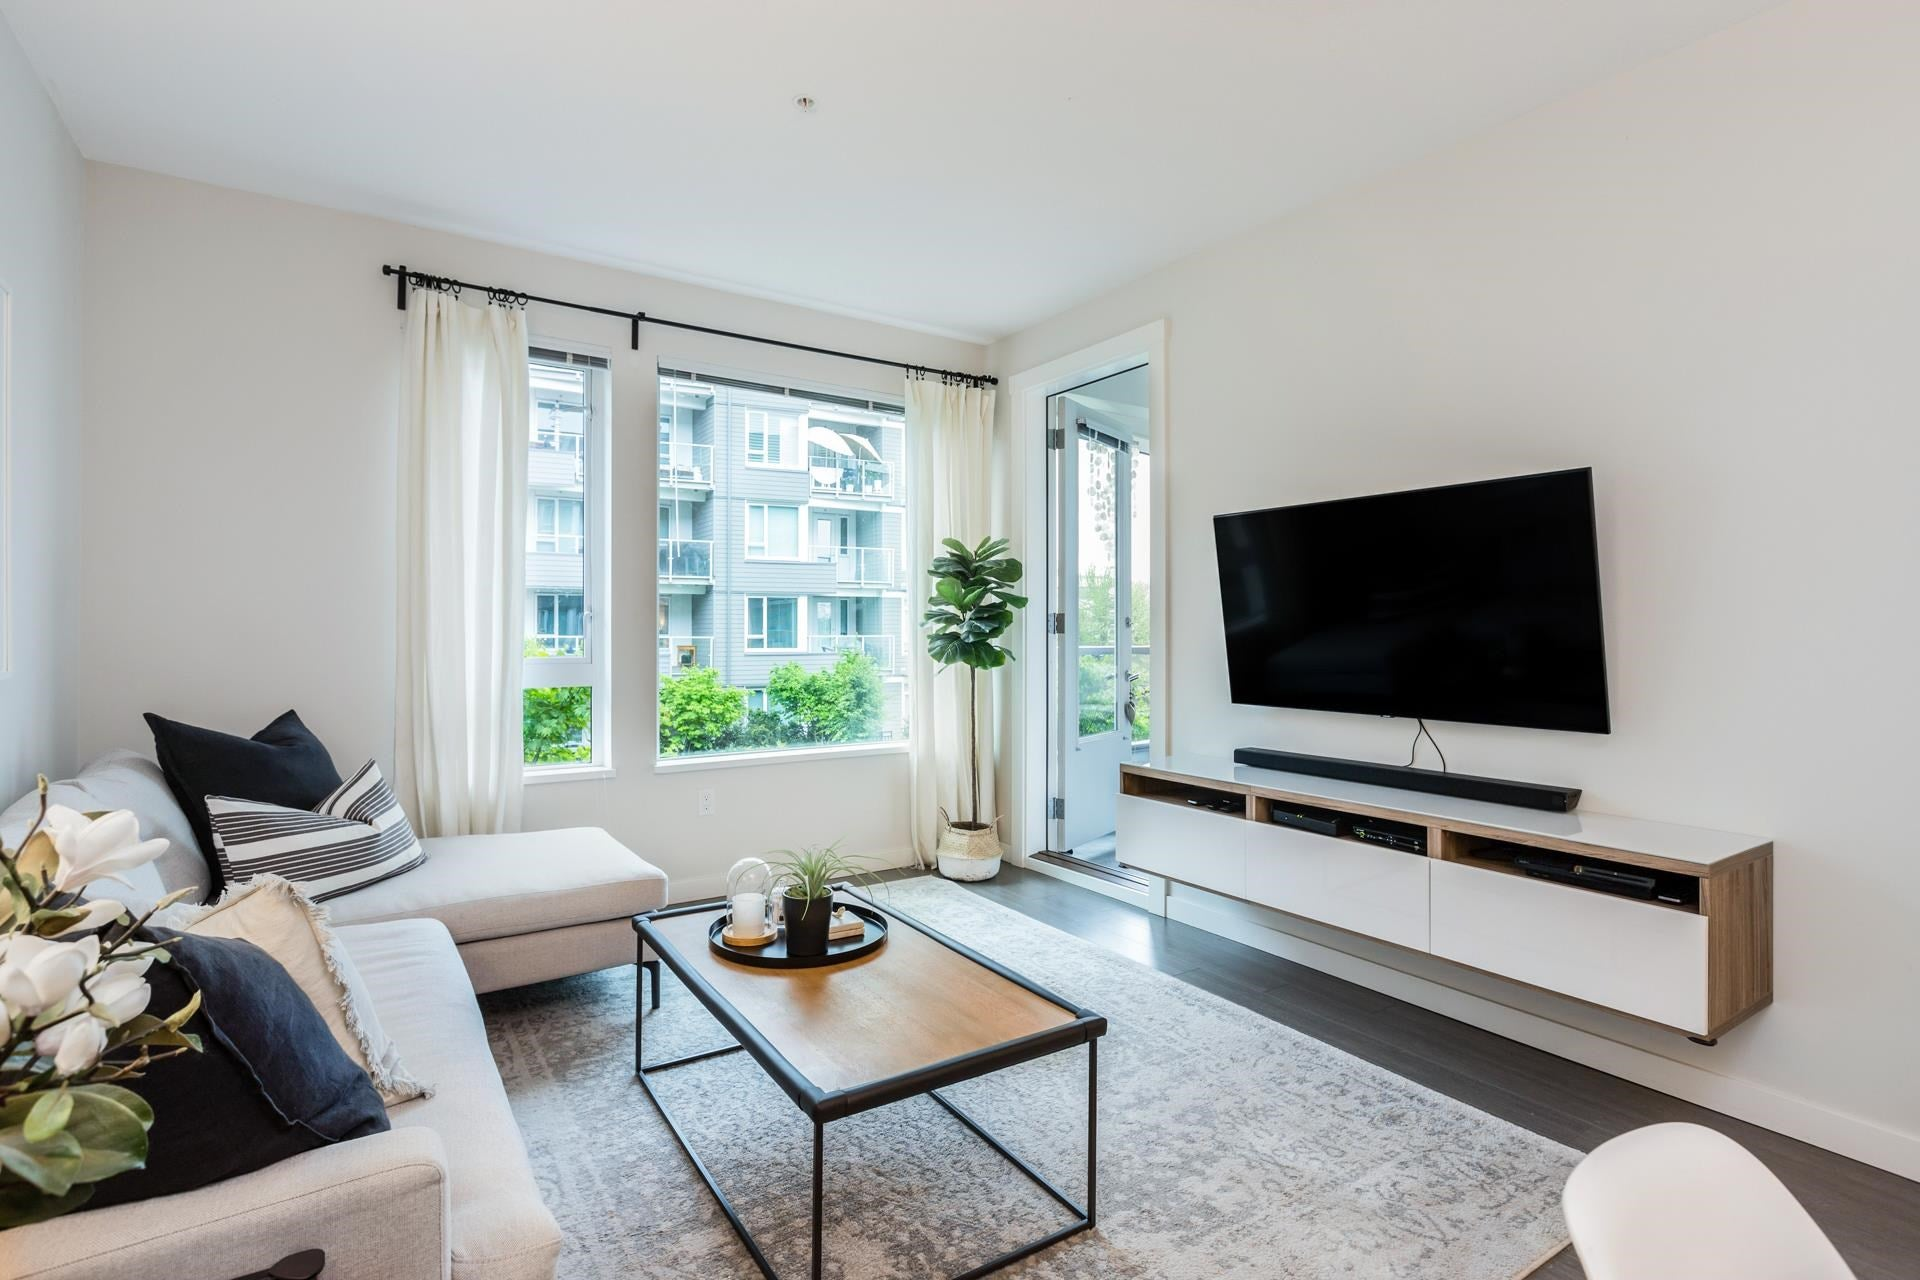 207 255 W 1ST STREET - Lower Lonsdale Apartment/Condo for sale, 2 Bedrooms (R2603882) - #2